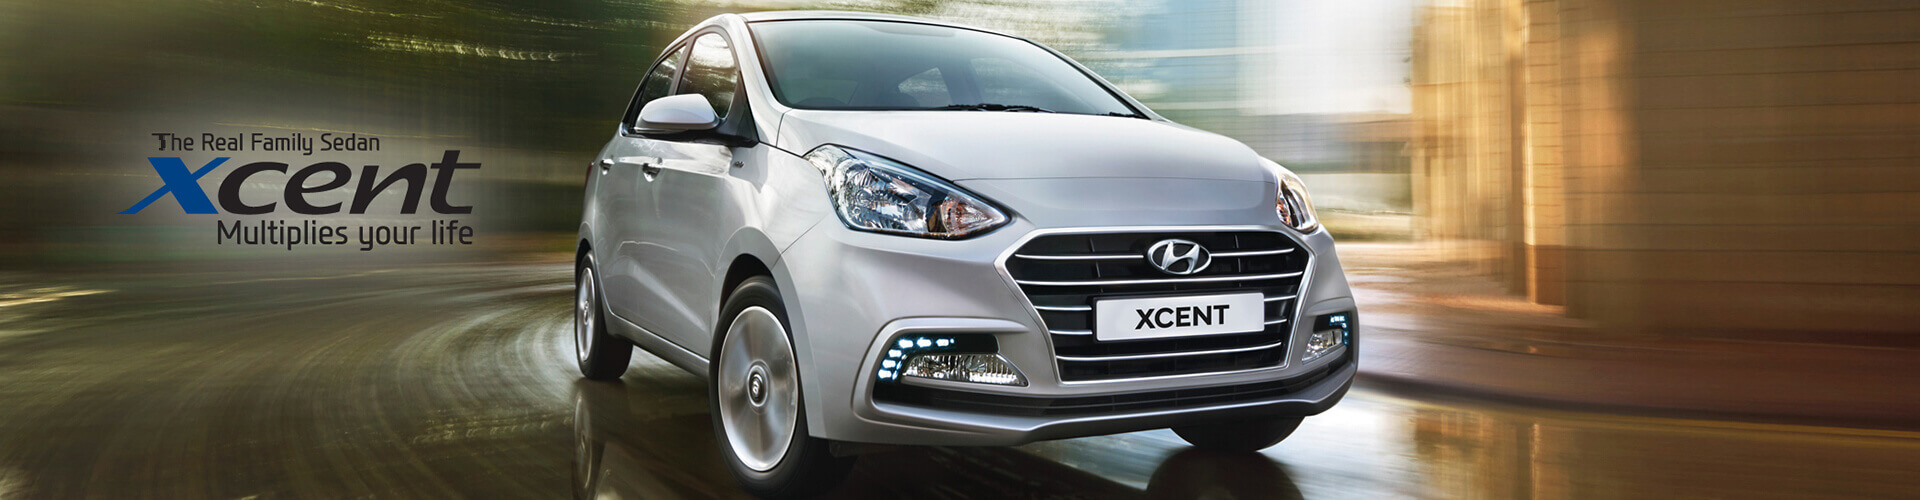 Hyundai Xcent Price Specifications Advaith Hyundai Bangalore